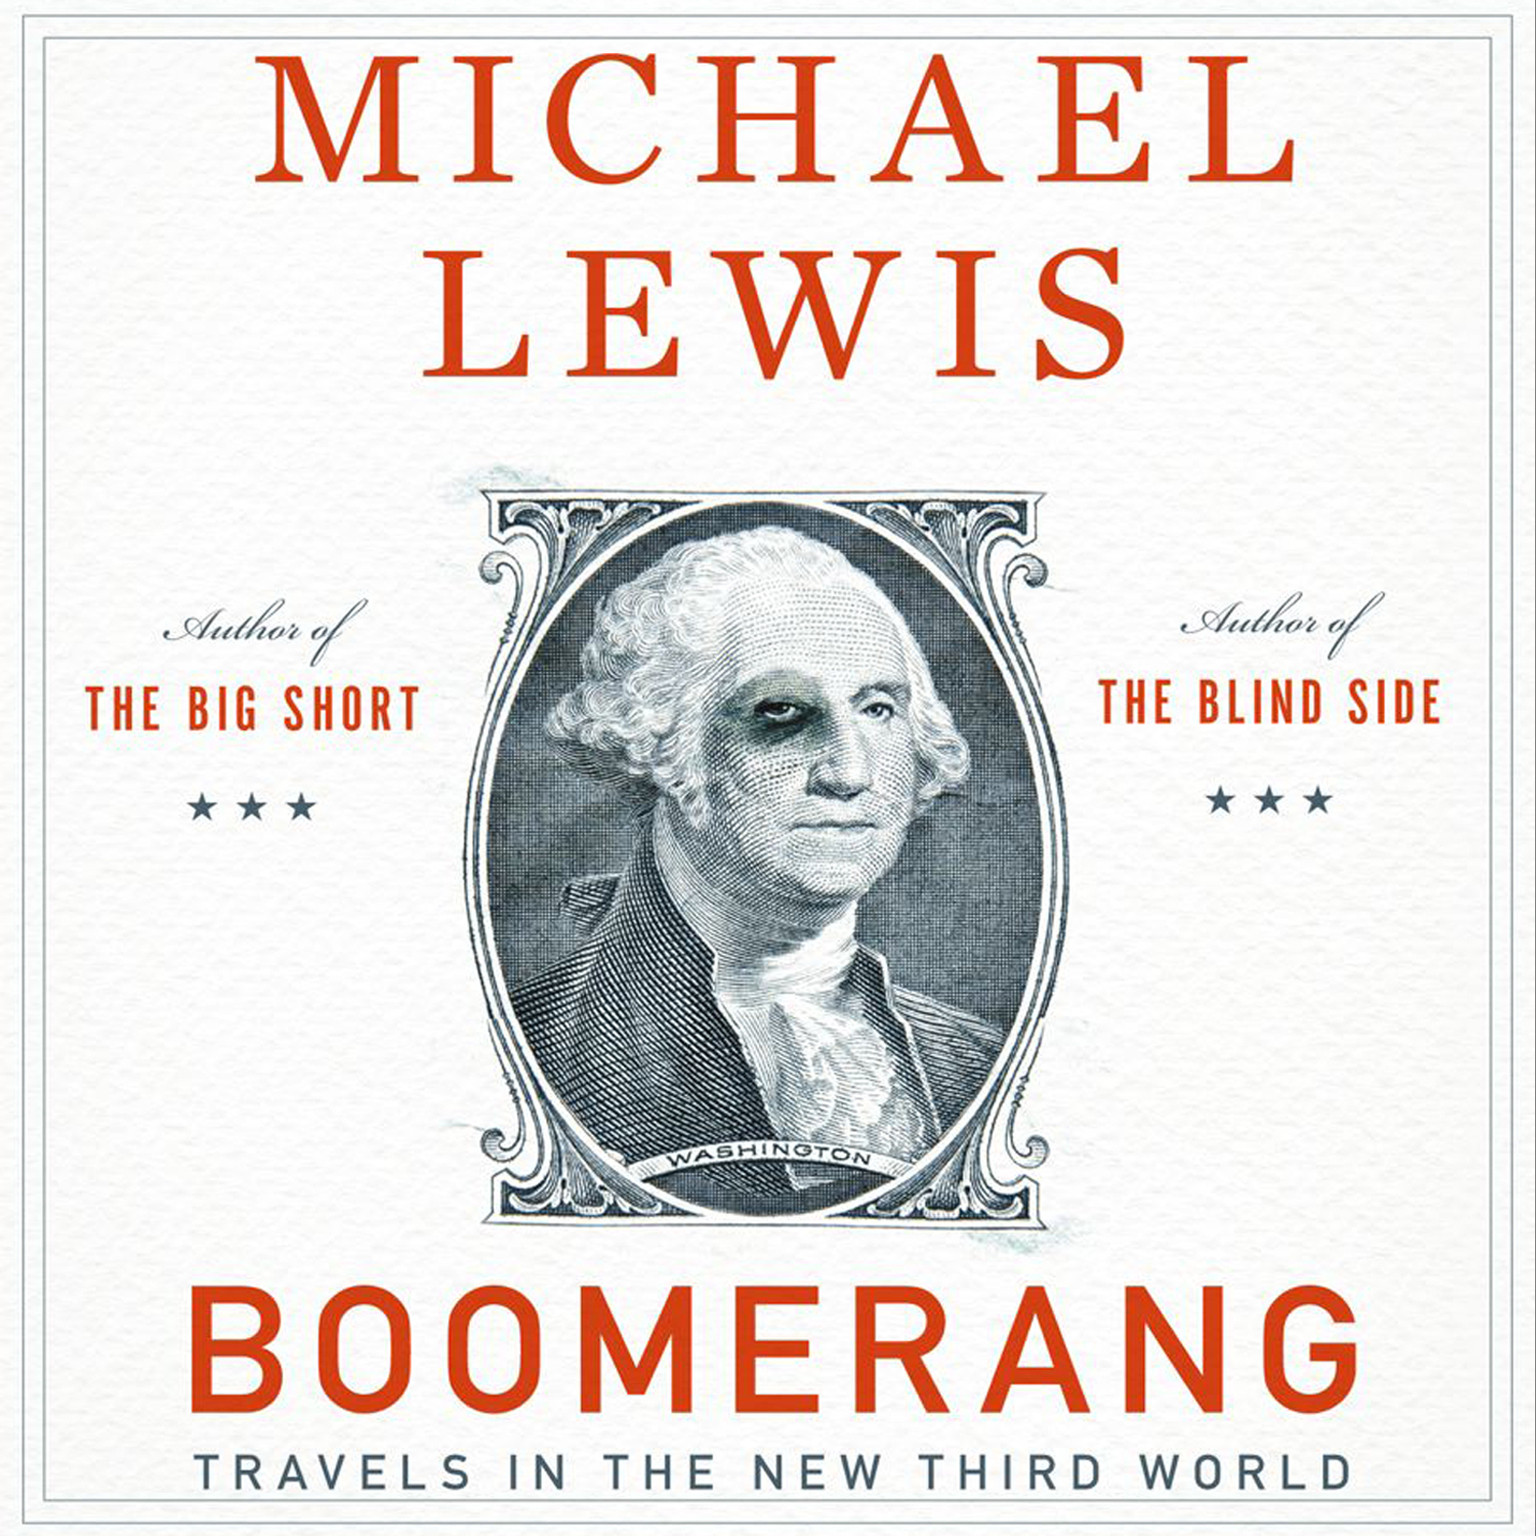 Boomerang: Travels in the New Third World - Michael Lewis - reviews for audiobook - reviews, quotes, summary